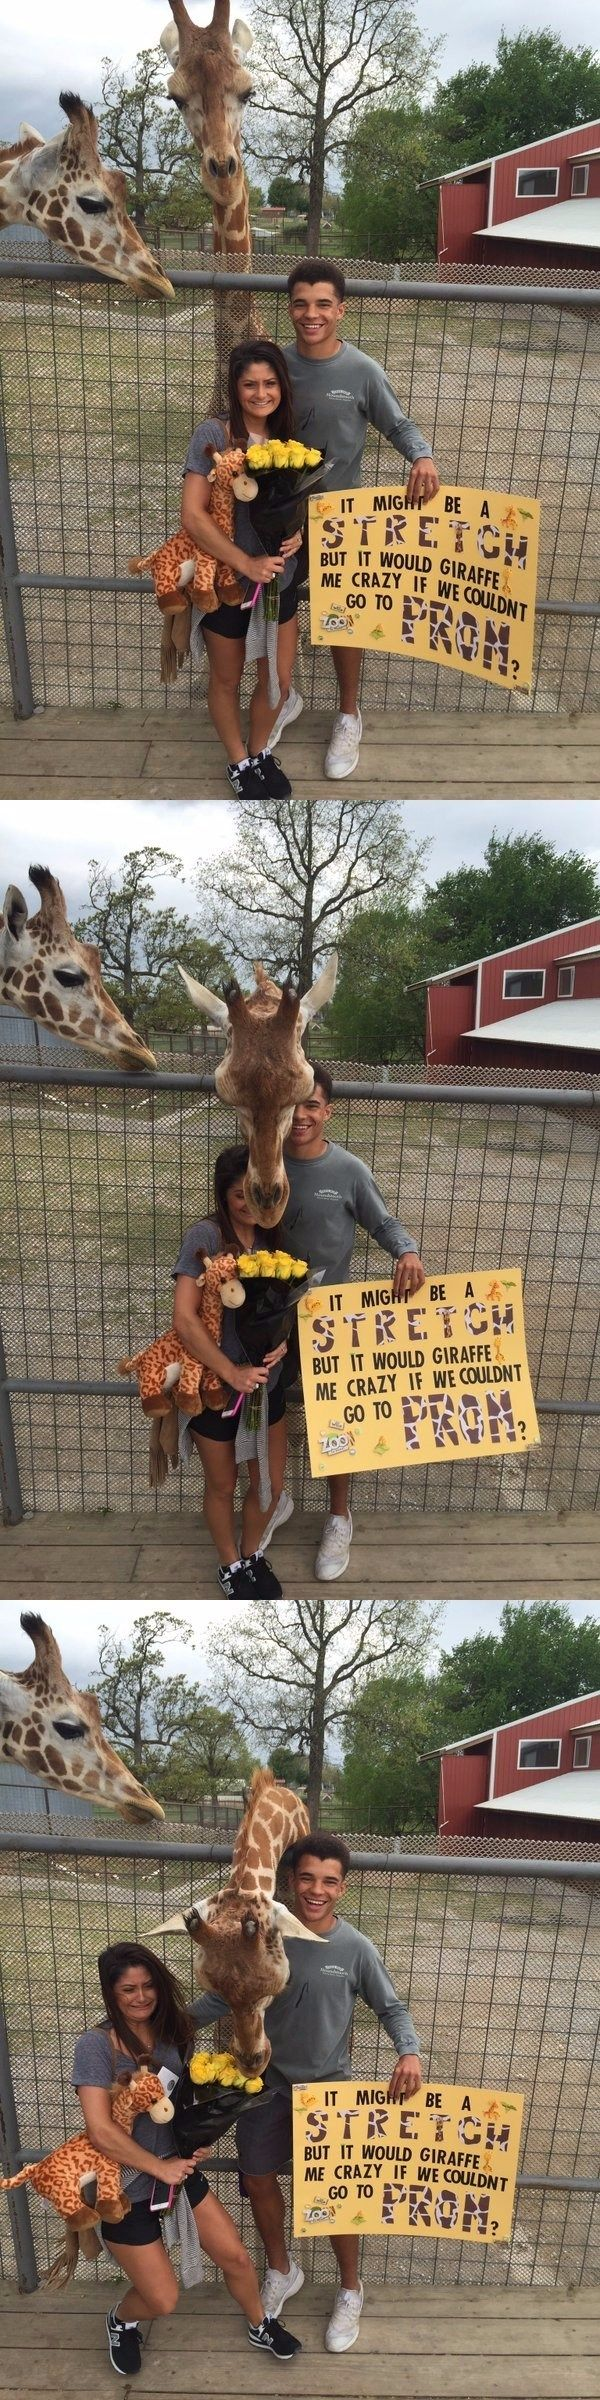 Jealous Giraffe Interrupts Teen's Promposal